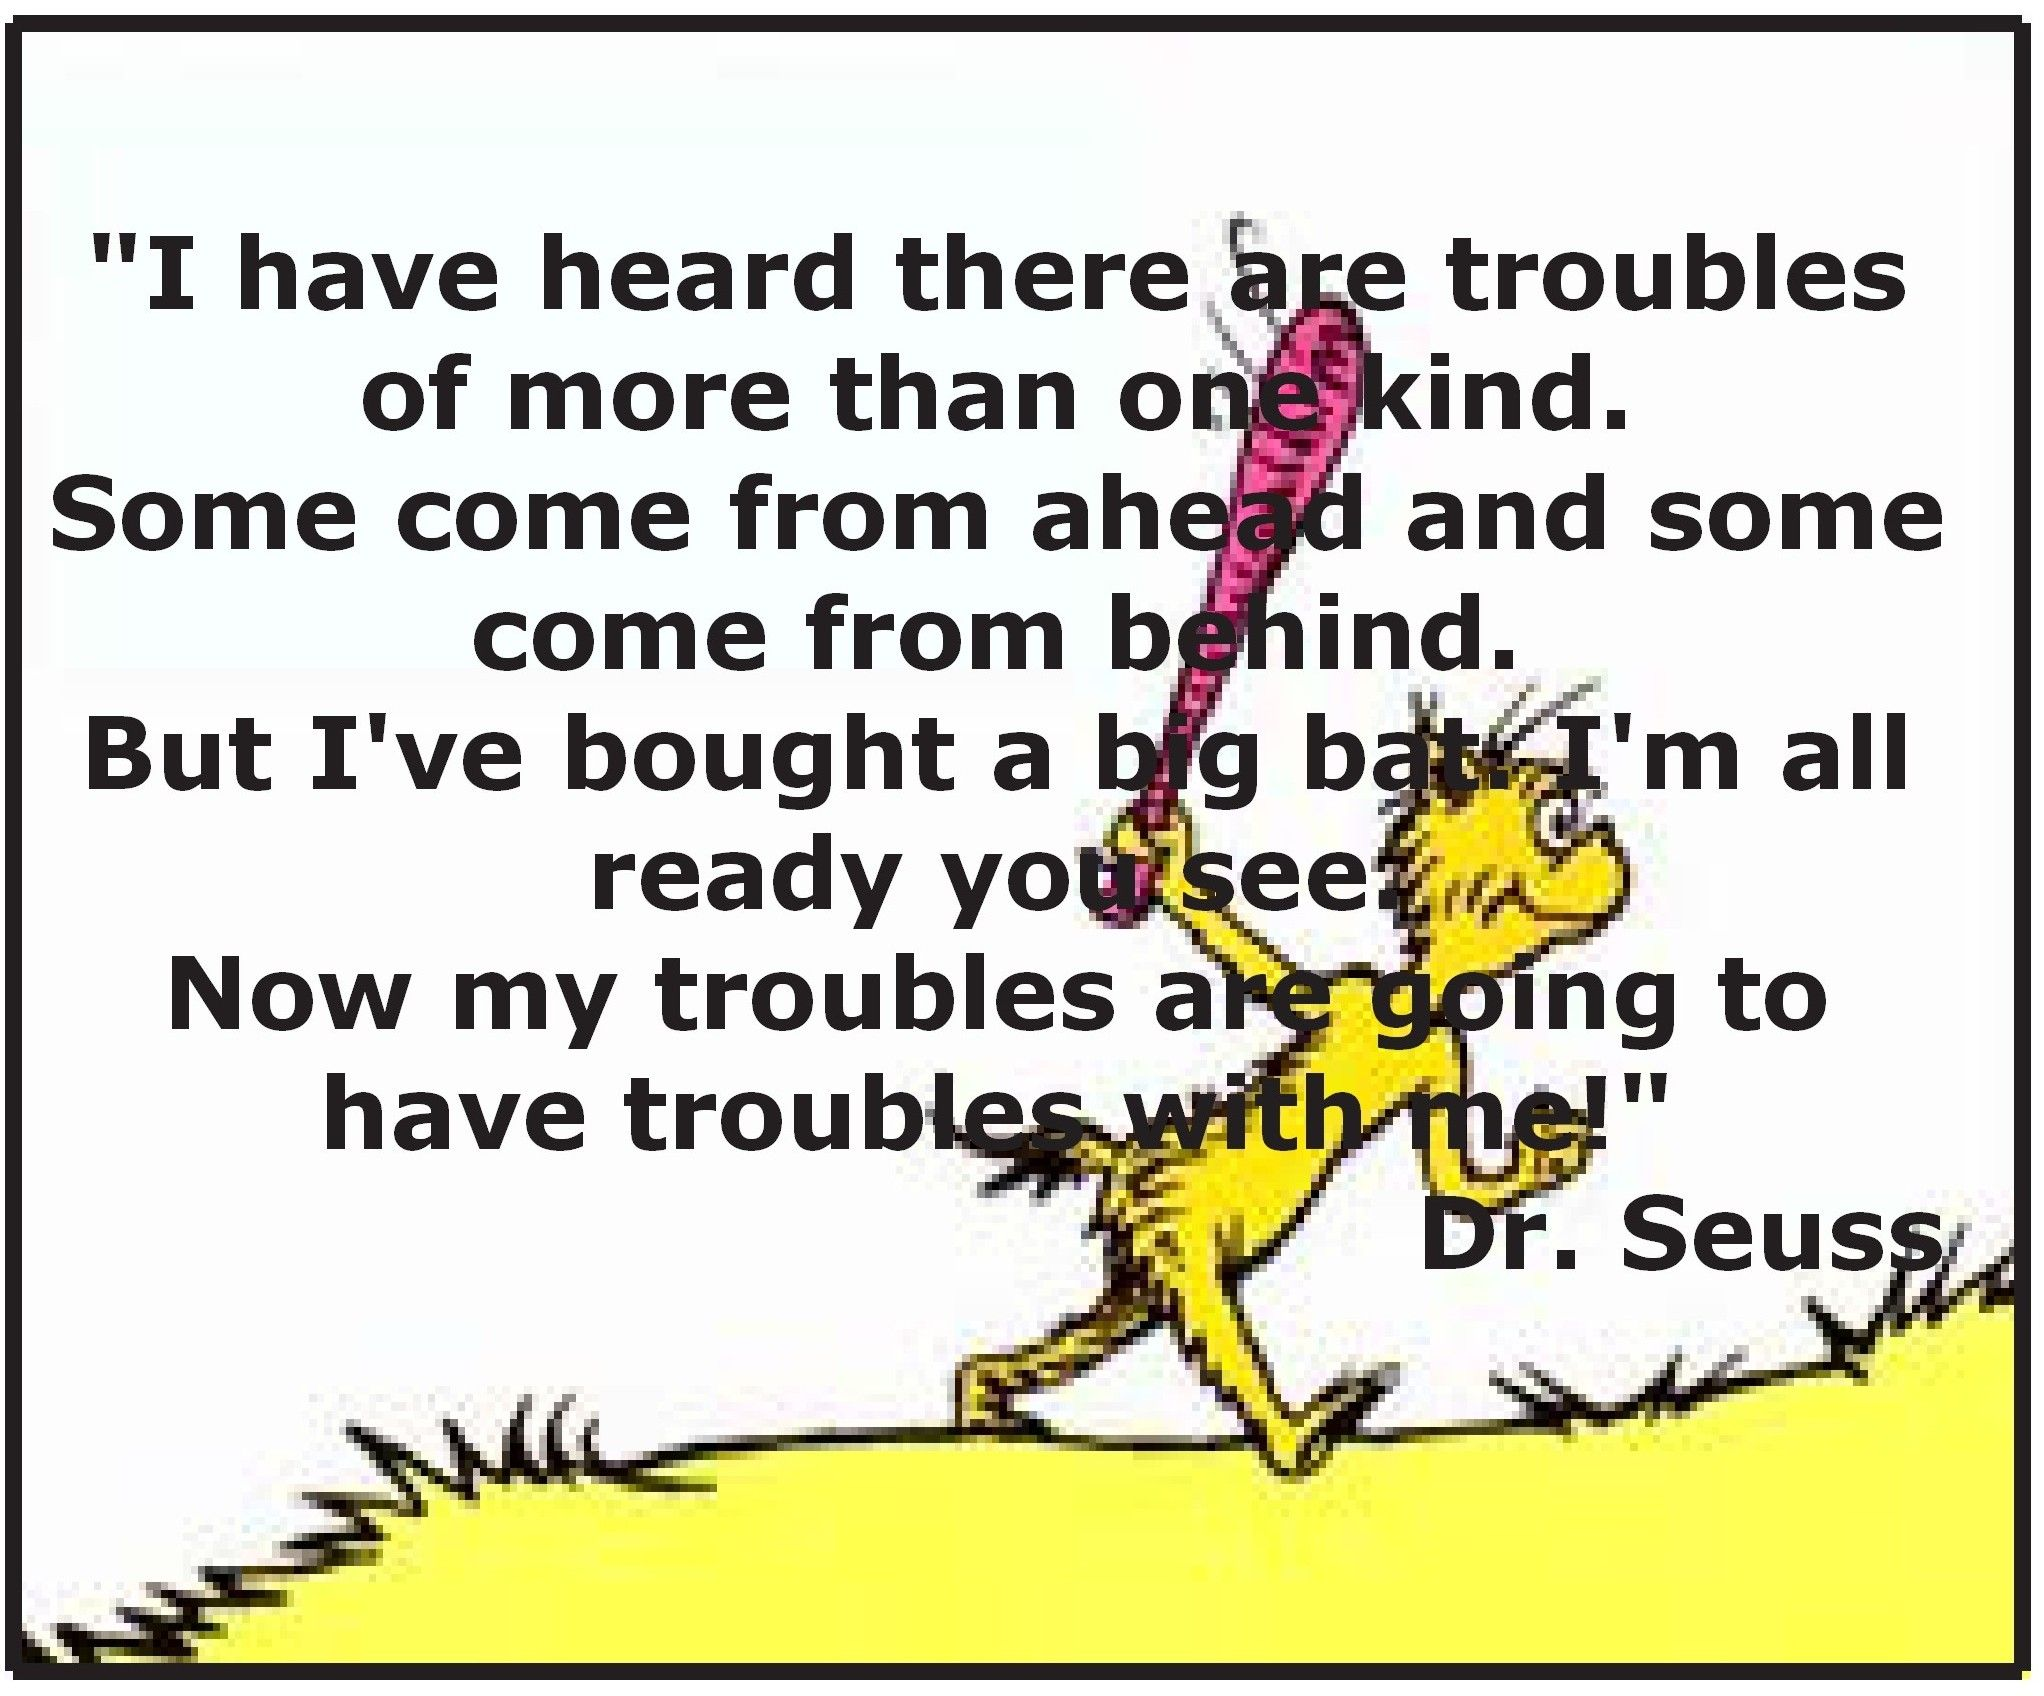 Troubles Are Going To Have Trouble With Me Dr Seuss Quotes